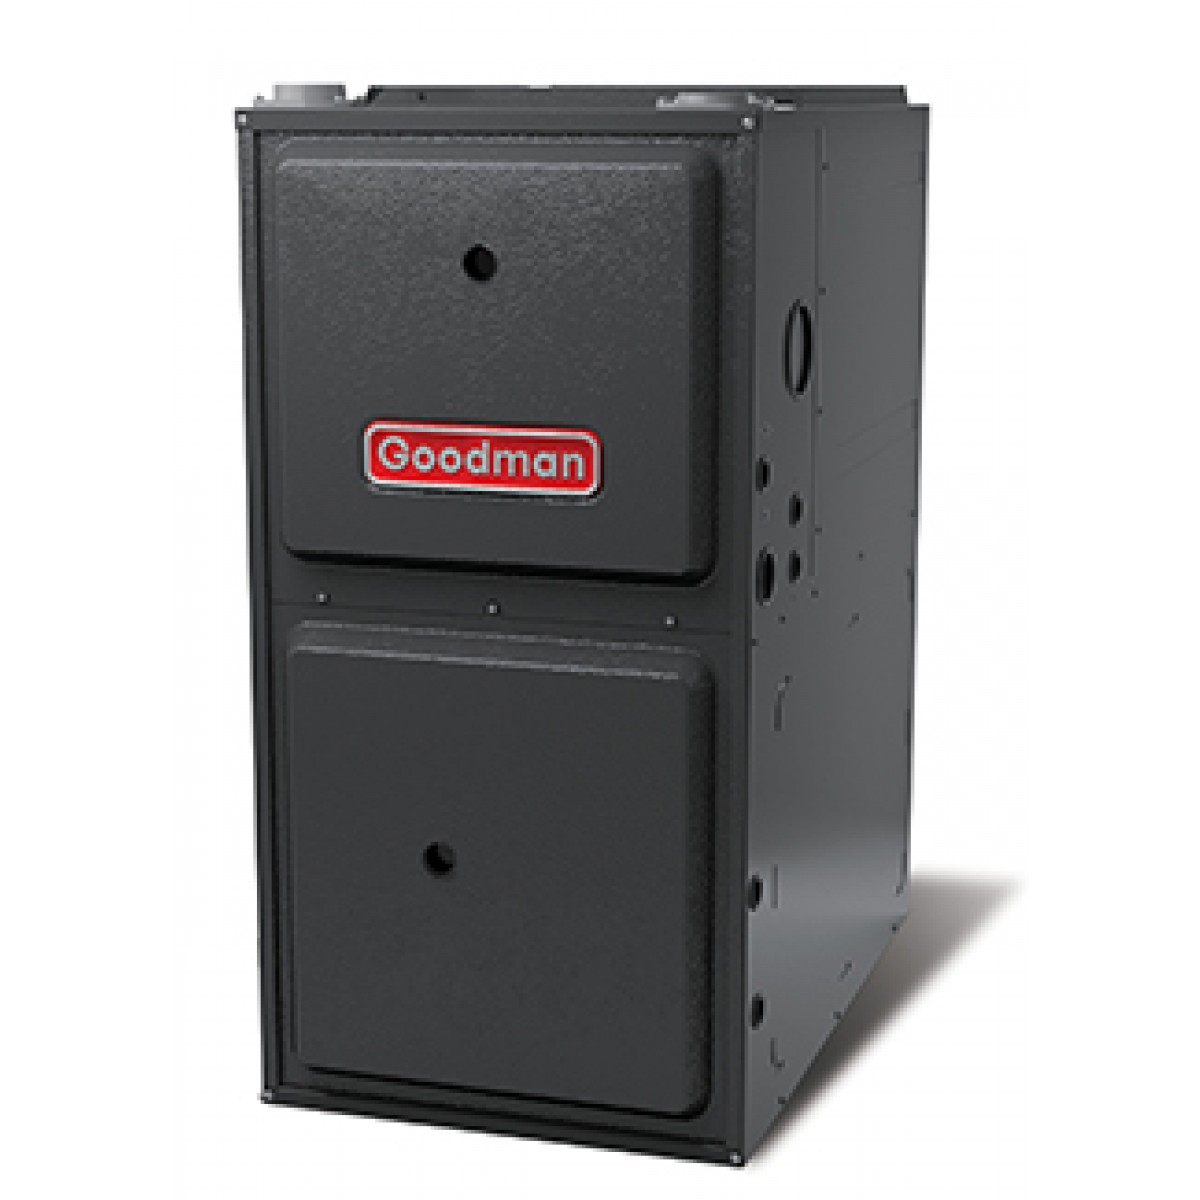 Goodman Gas Furnace Reviews